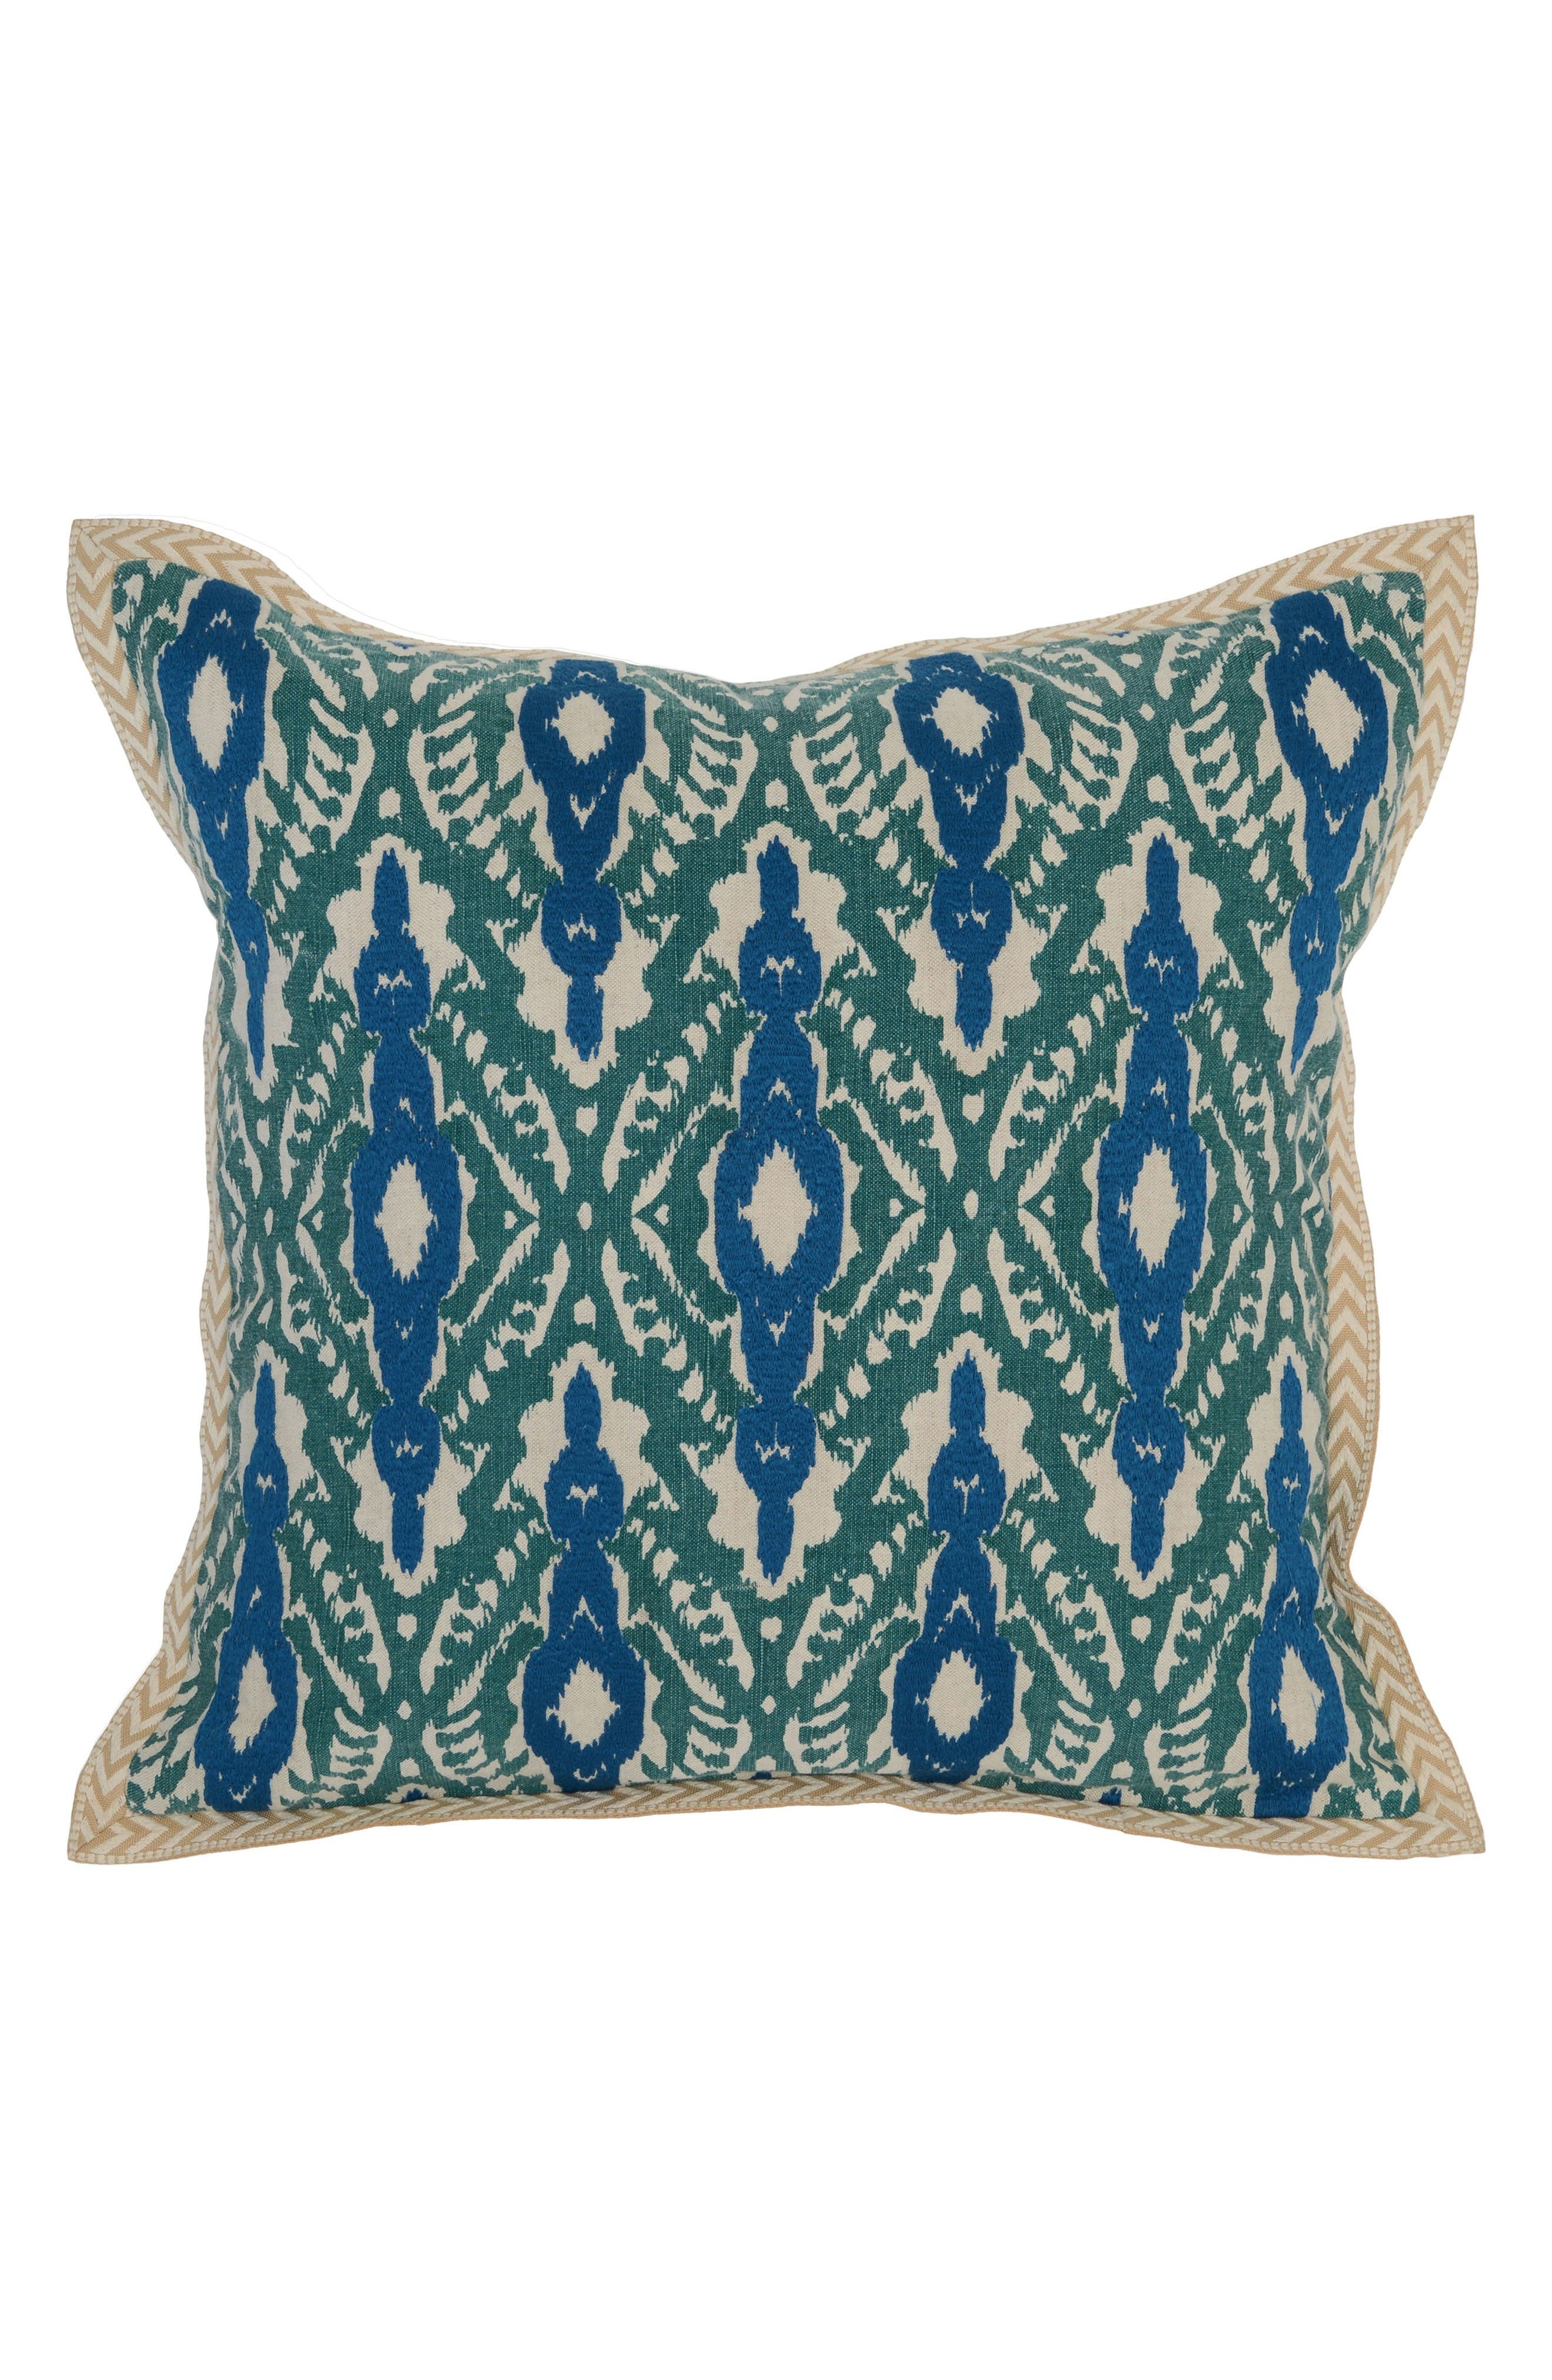 Bali Accent Pillow,                         Main,                         color, Teal/ Blue